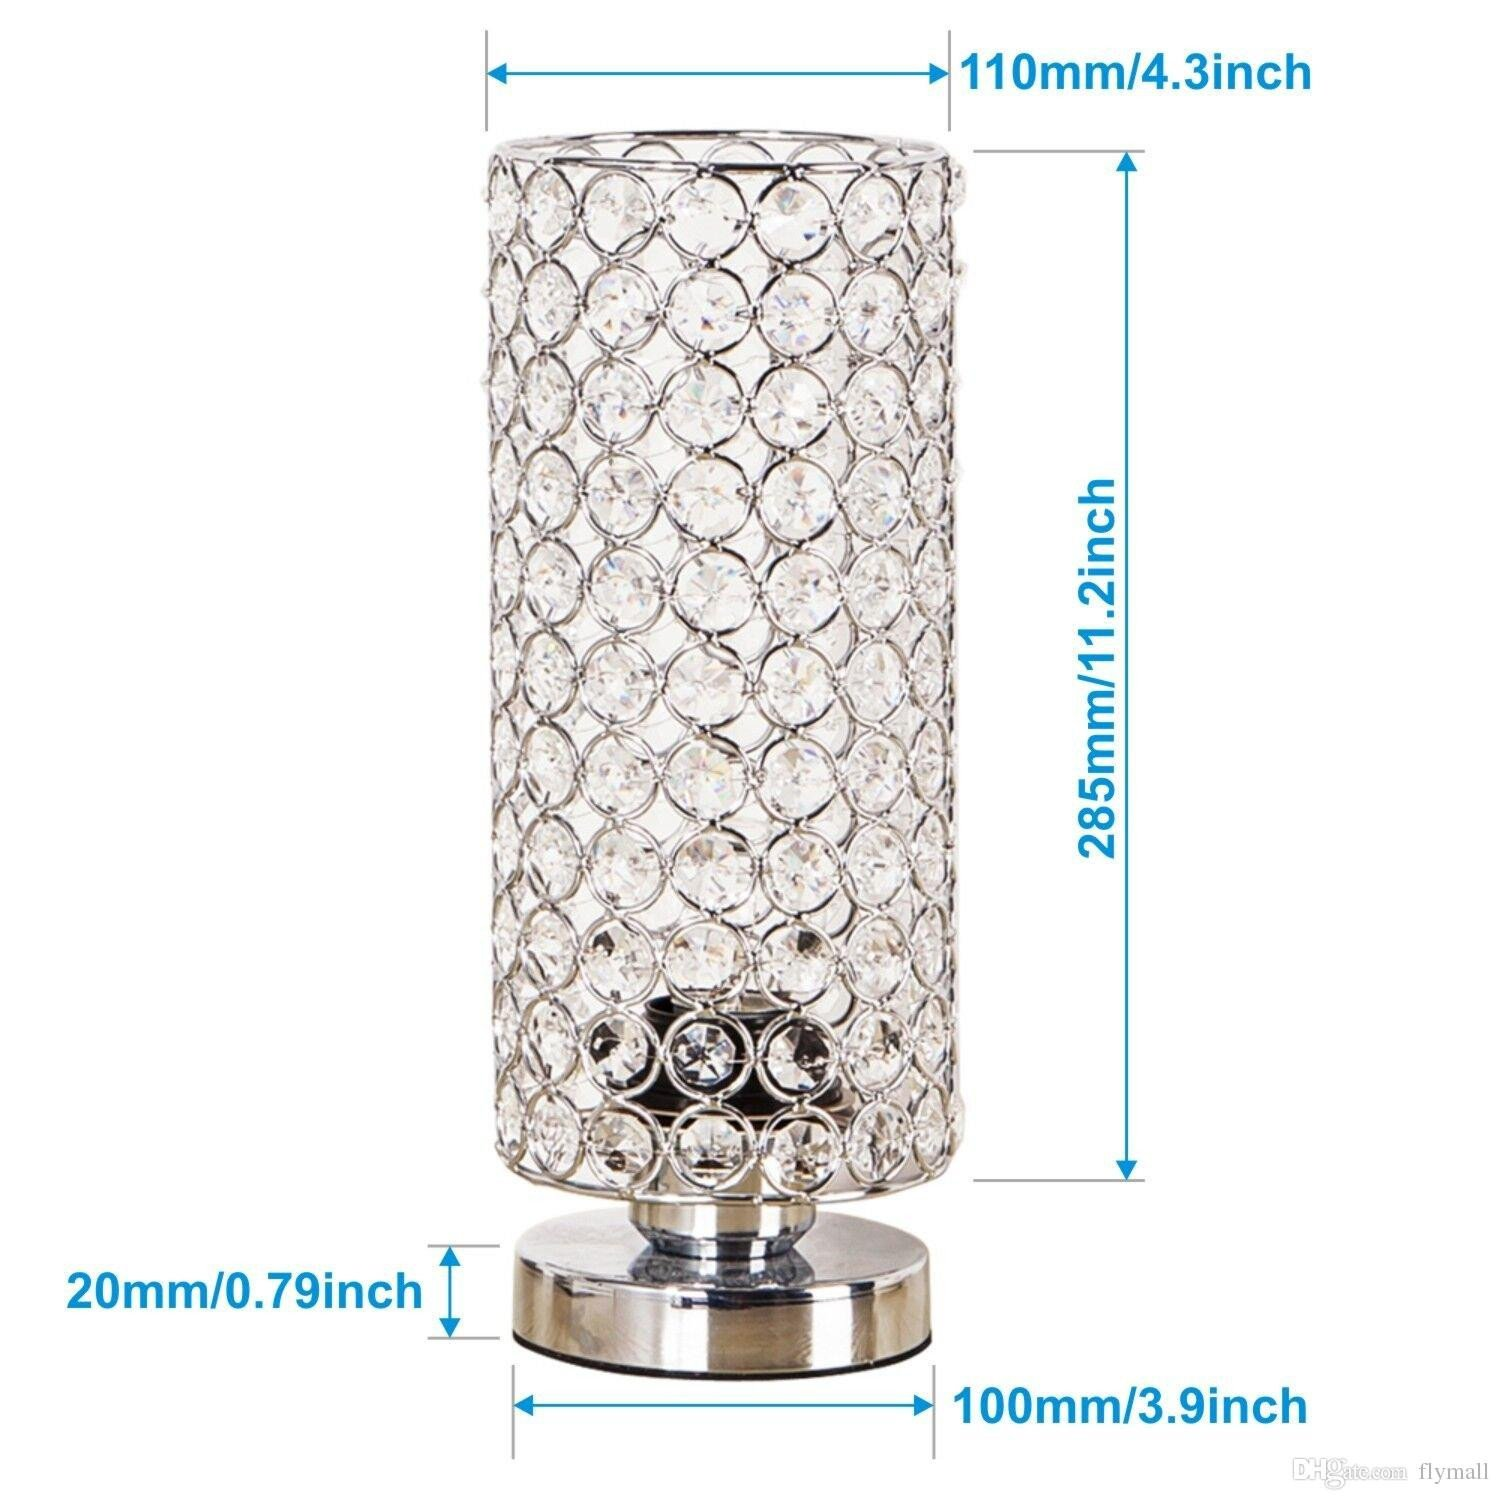 Cute Lamps for Bedroom New 2019 Crystal Table Lamp Nightstand Decorative Room Desk Lamp Night Light Lamp Table Lamps for Bedroom Living Room Kitchen Dining Room From Flymall